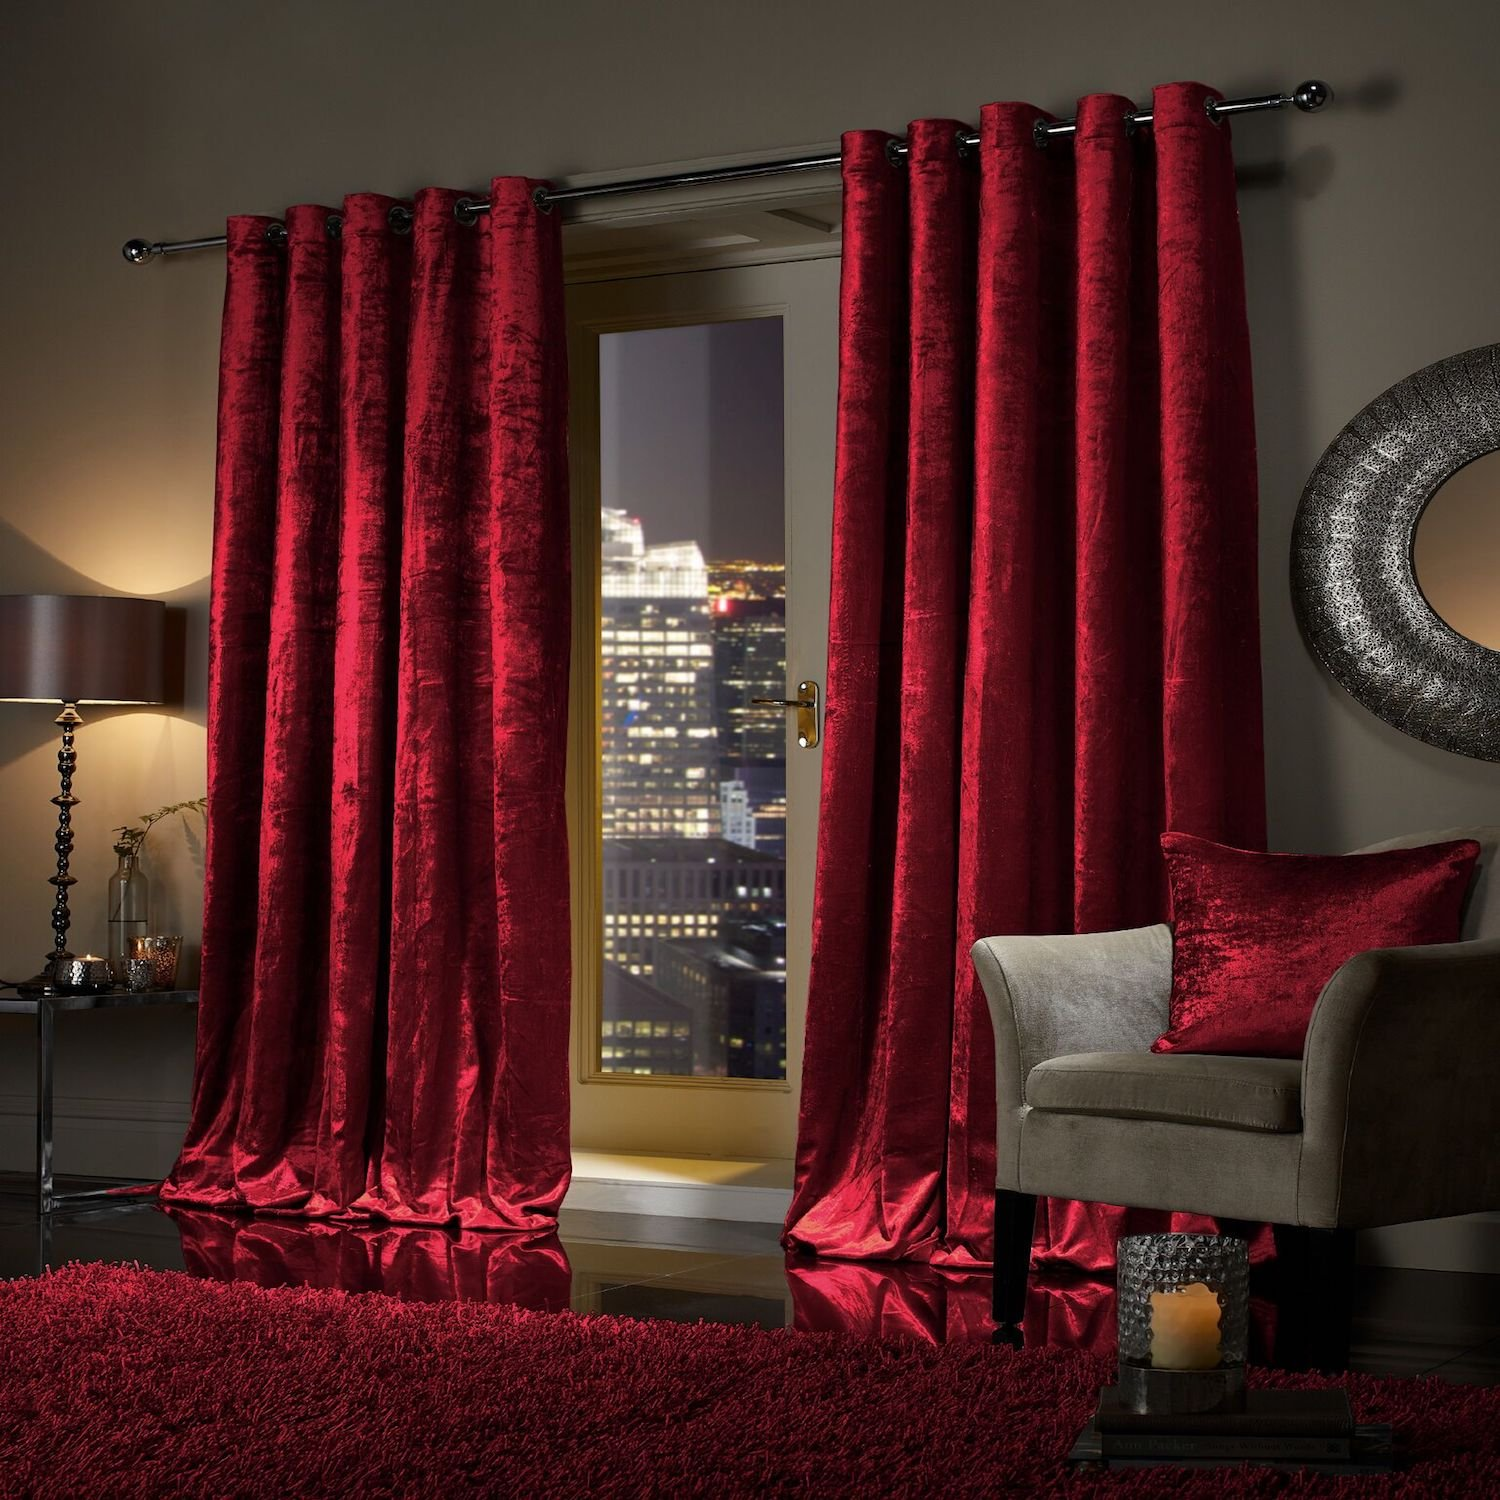 """viceroy bedding Pair of Heavy Crushed Velvet Curtains EYELET RING TOP Fully  Lined Curtains Raspberry Red 90"""" Width x 90"""" Depth- Buy Online in India at  desertcart.in. ProductId : 145928275."""